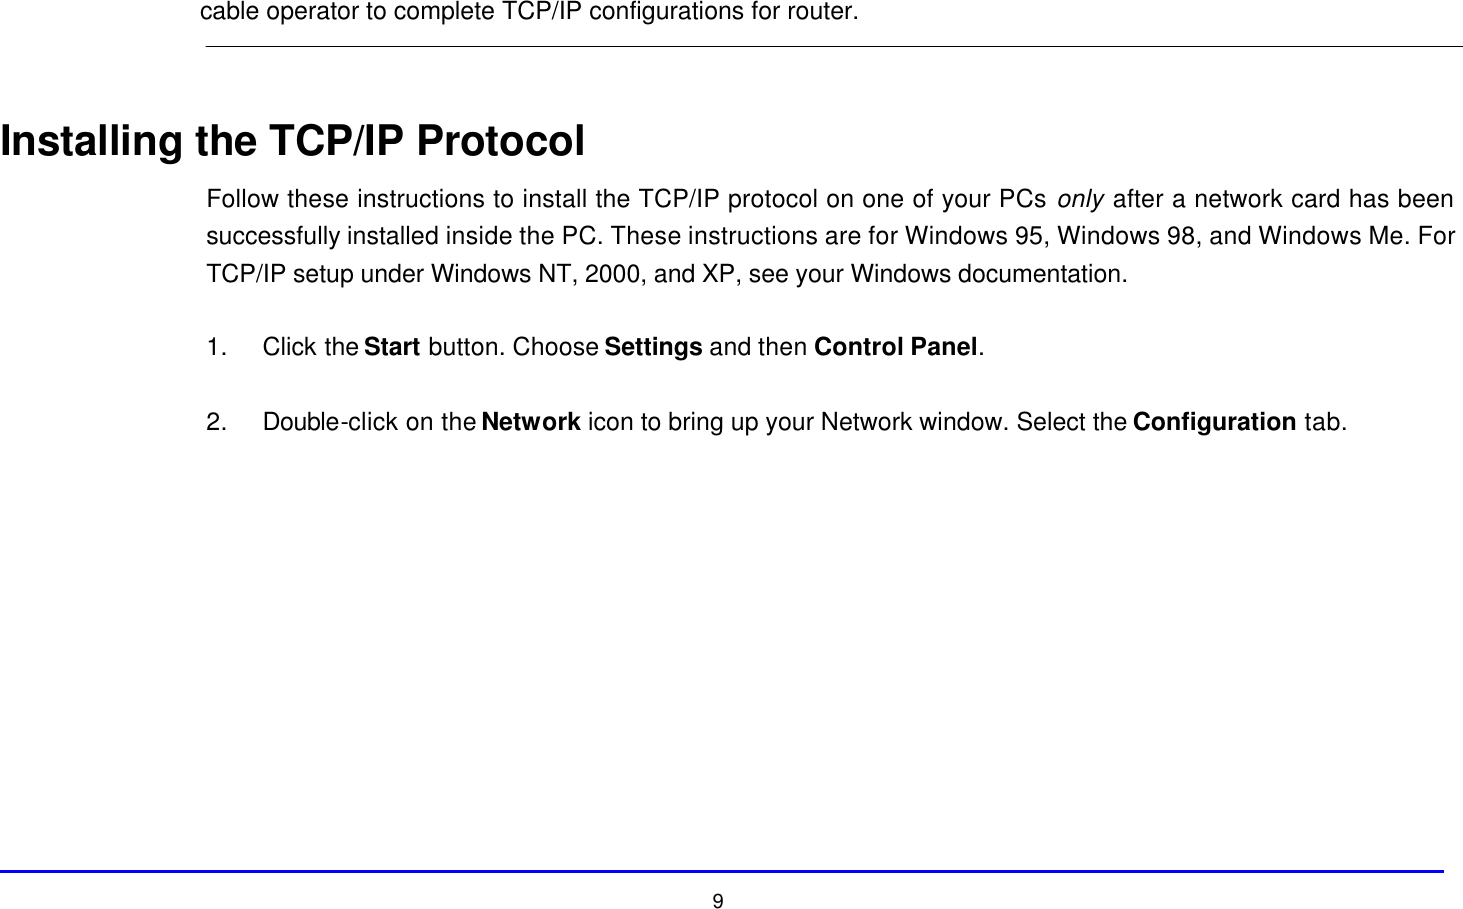 9 cable operator to complete TCP/IP configurations for router.   Installing the TCP/IP Protocol Follow these instructions to install the TCP/IP protocol on one of your PCs only after a network card has been successfully installed inside the PC. These instructions are for Windows 95, Windows 98, and Windows Me. For TCP/IP setup under Windows NT, 2000, and XP, see your Windows documentation.  1. Click the Start button. Choose Settings and then Control Panel.  2. Double-click on the Network icon to bring up your Network window. Select the Configuration tab.